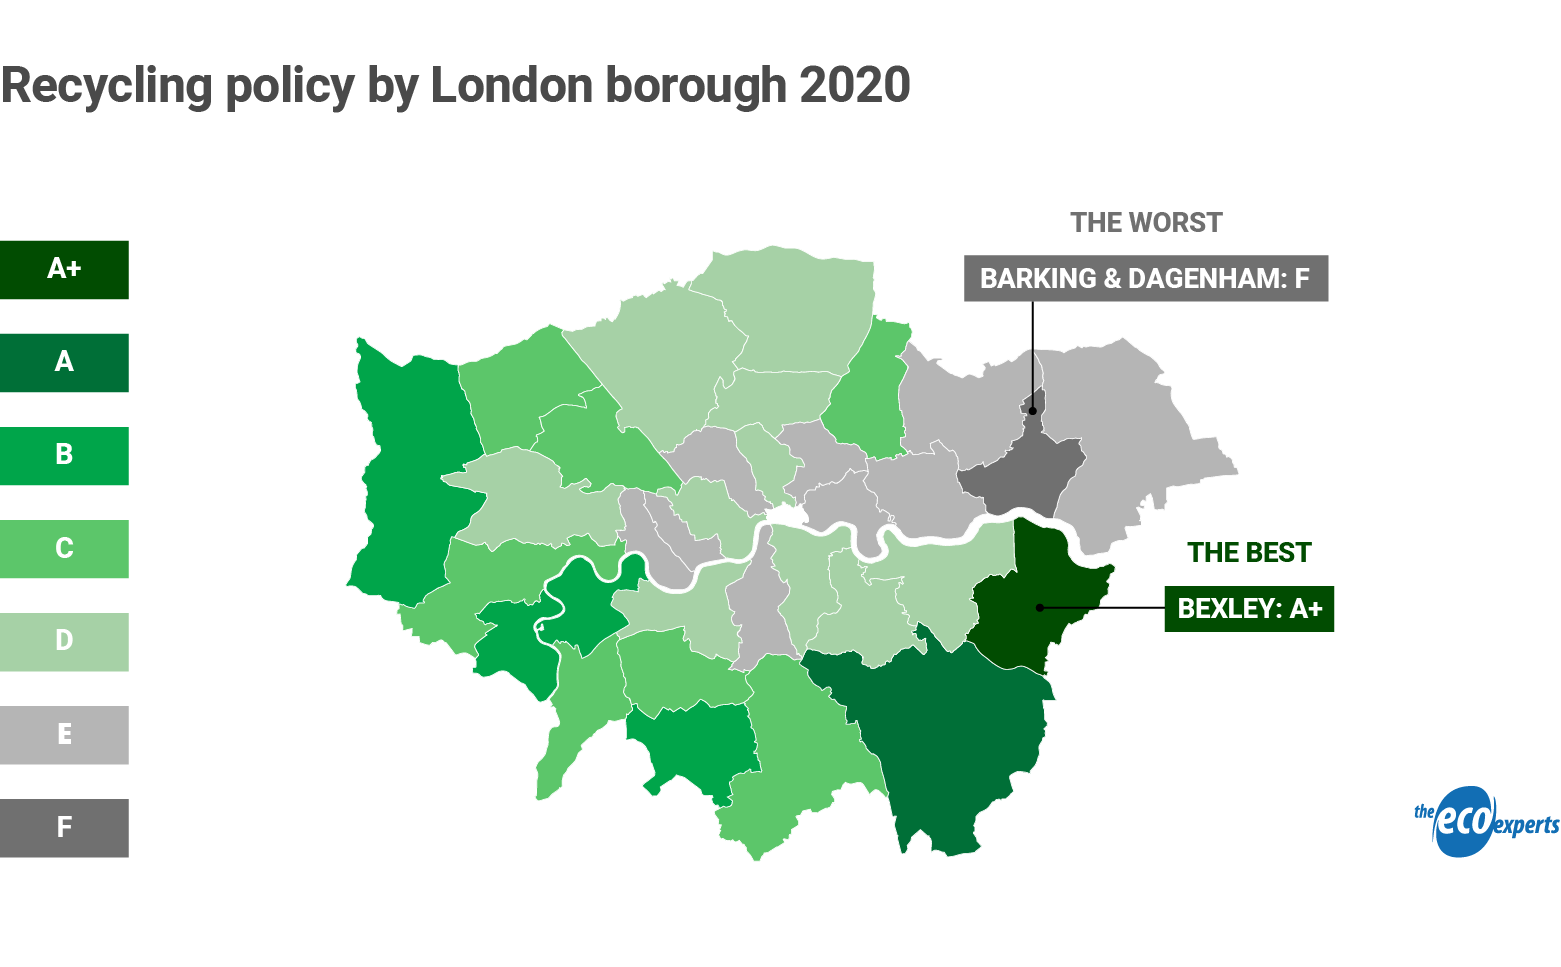 map of London showing recycling policy by borough